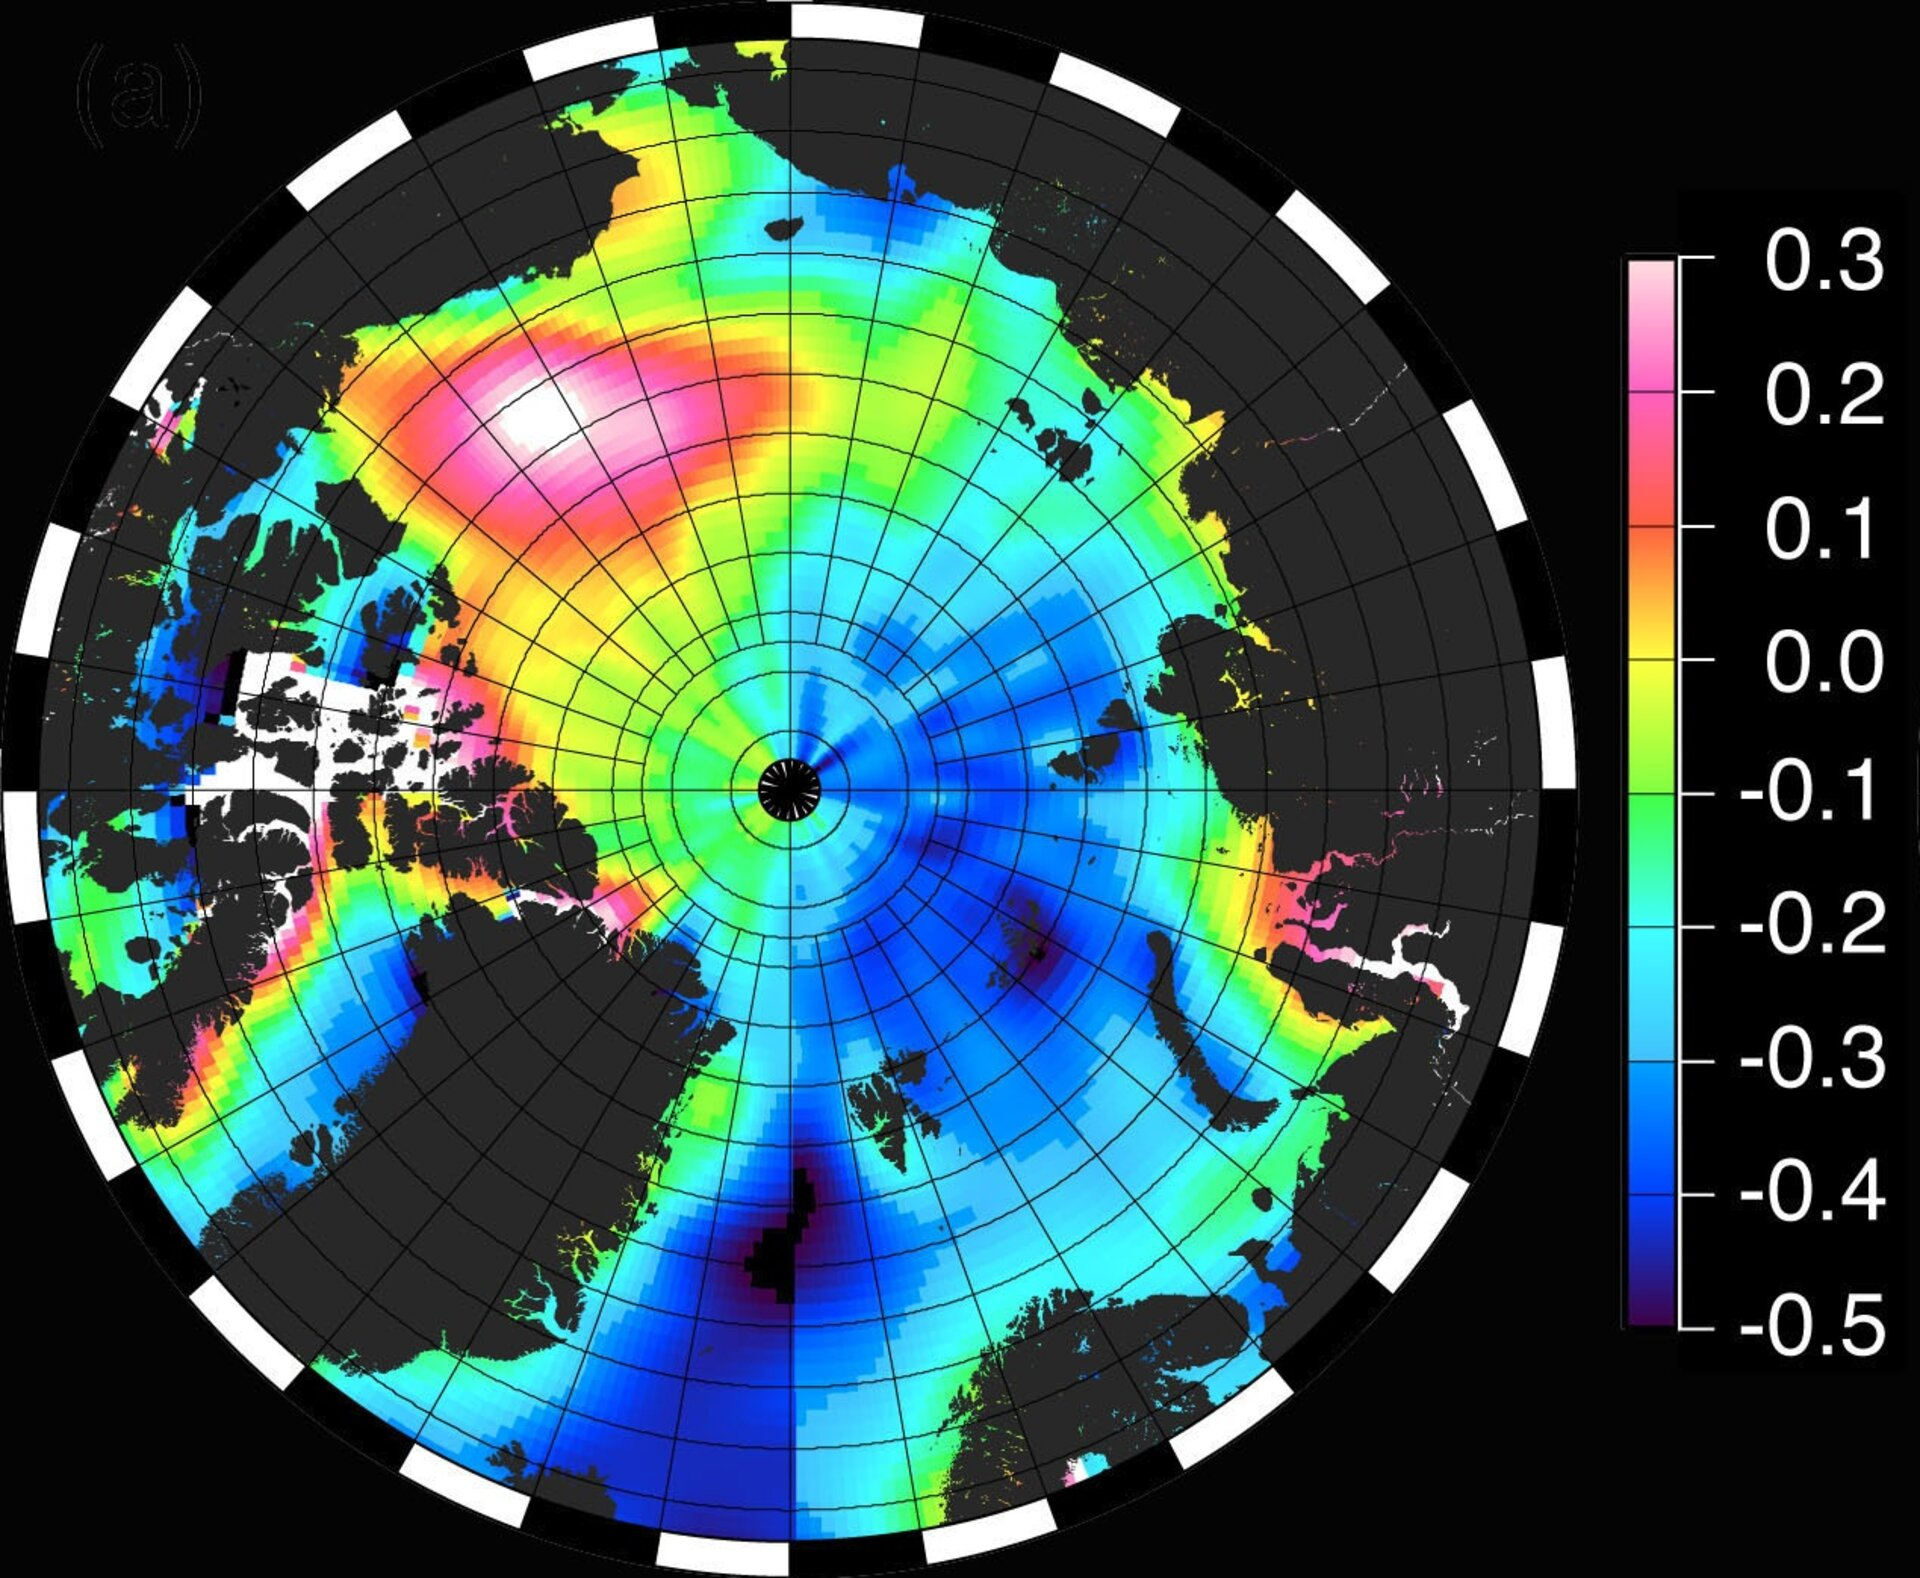 Ocean dynamic topography from CryoSat